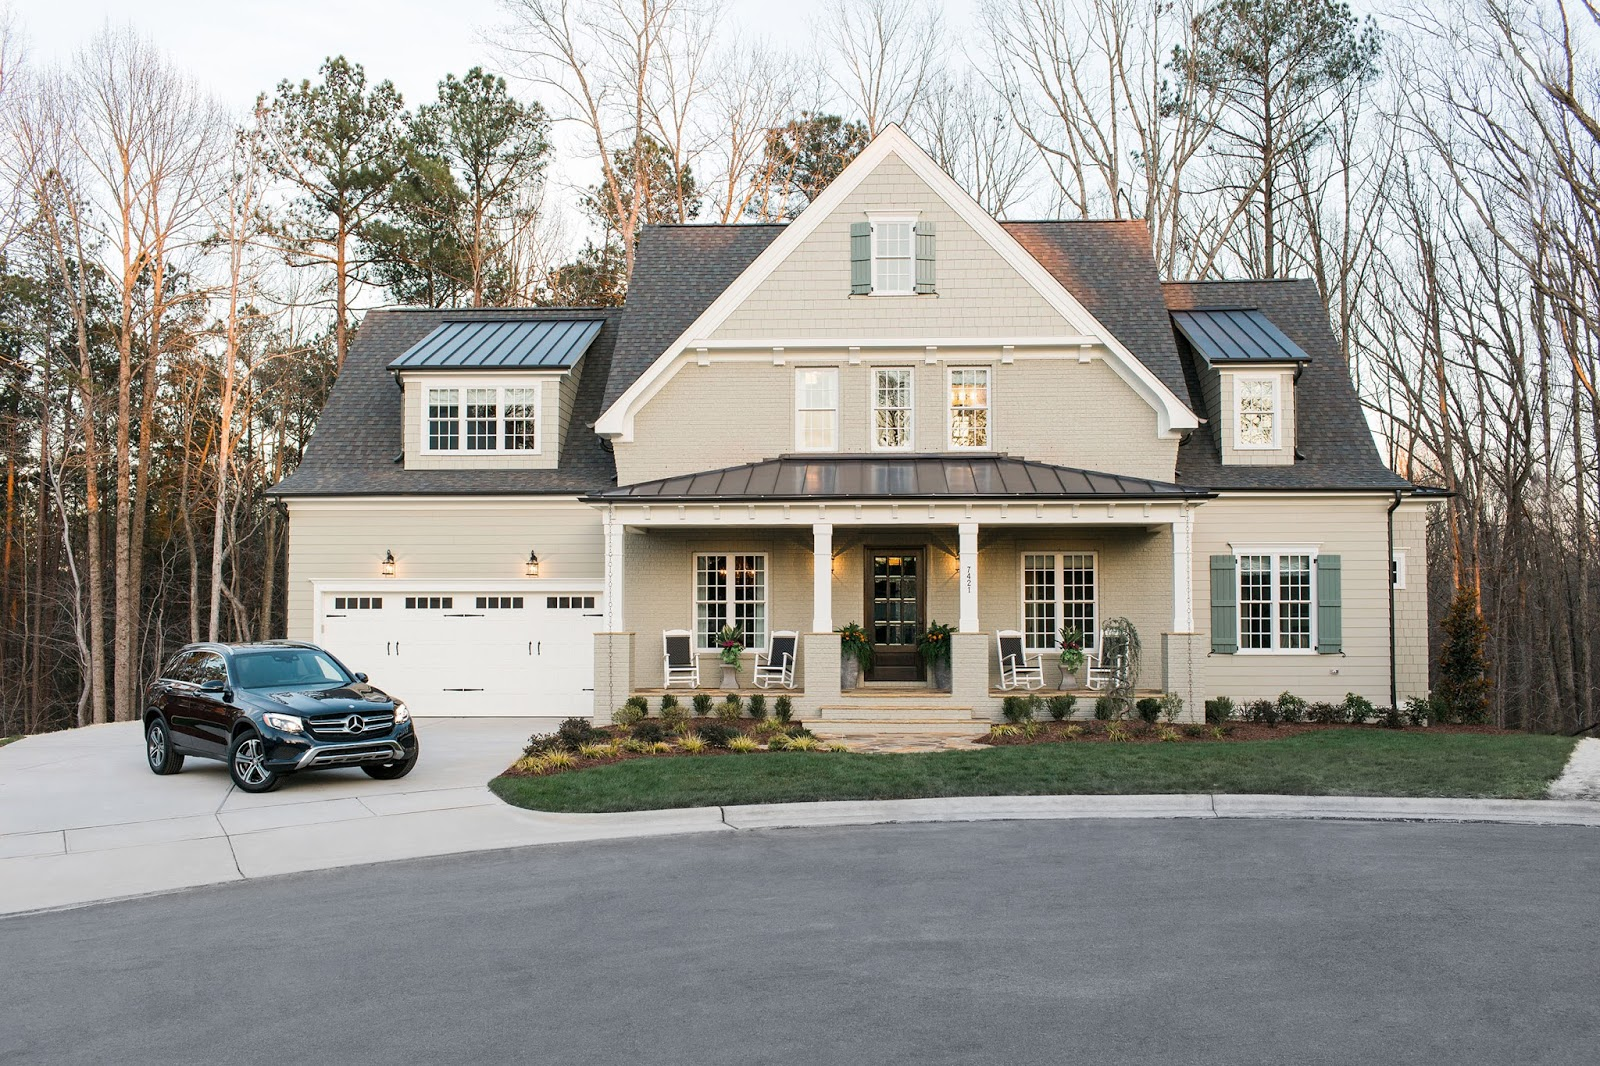 Hines sight blog raleigh nc is home to new hgtv smart home for Smart home plan